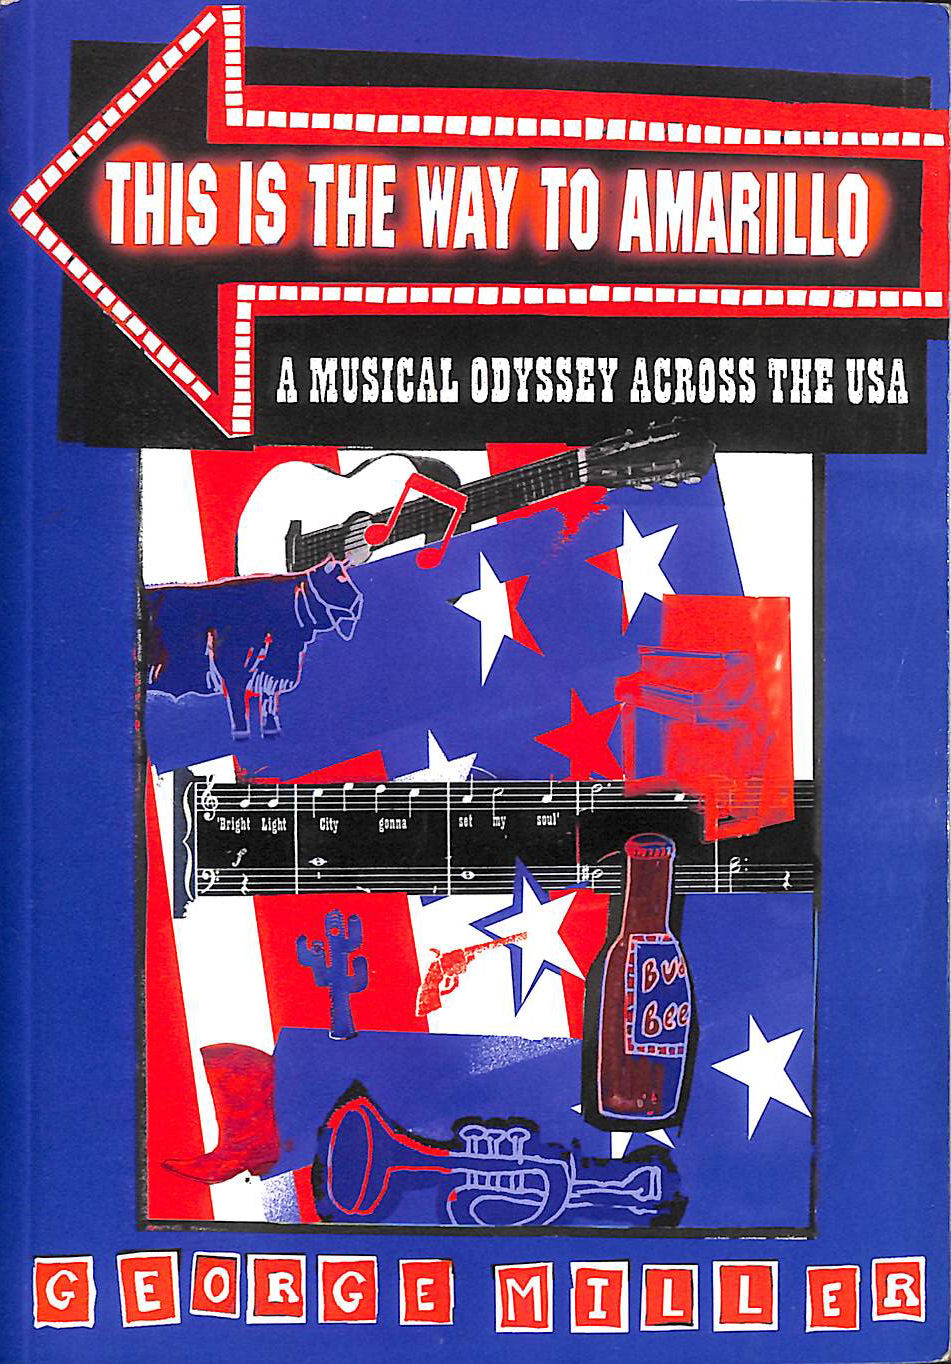 This is the Way to Amarillo: A Musical Odyssey Across the USA (Know the Score), George Miller